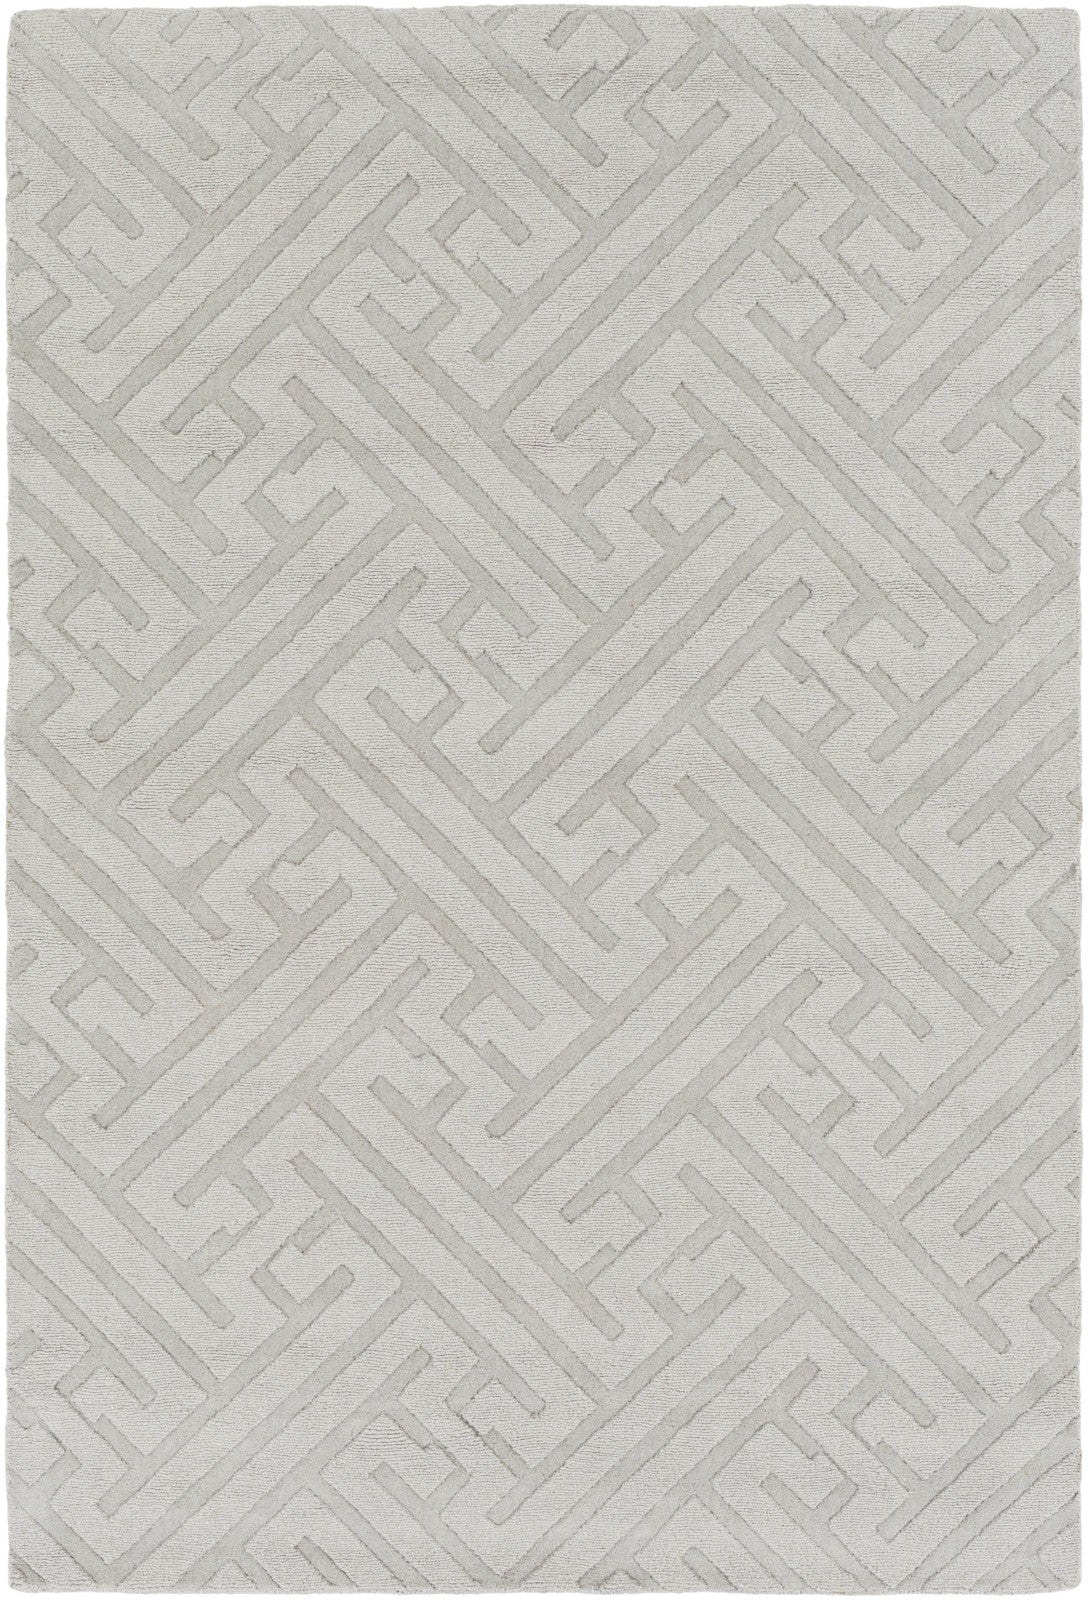 Surya The Oakes OAK-6011 Area Rug by Florence Broadhurst main image